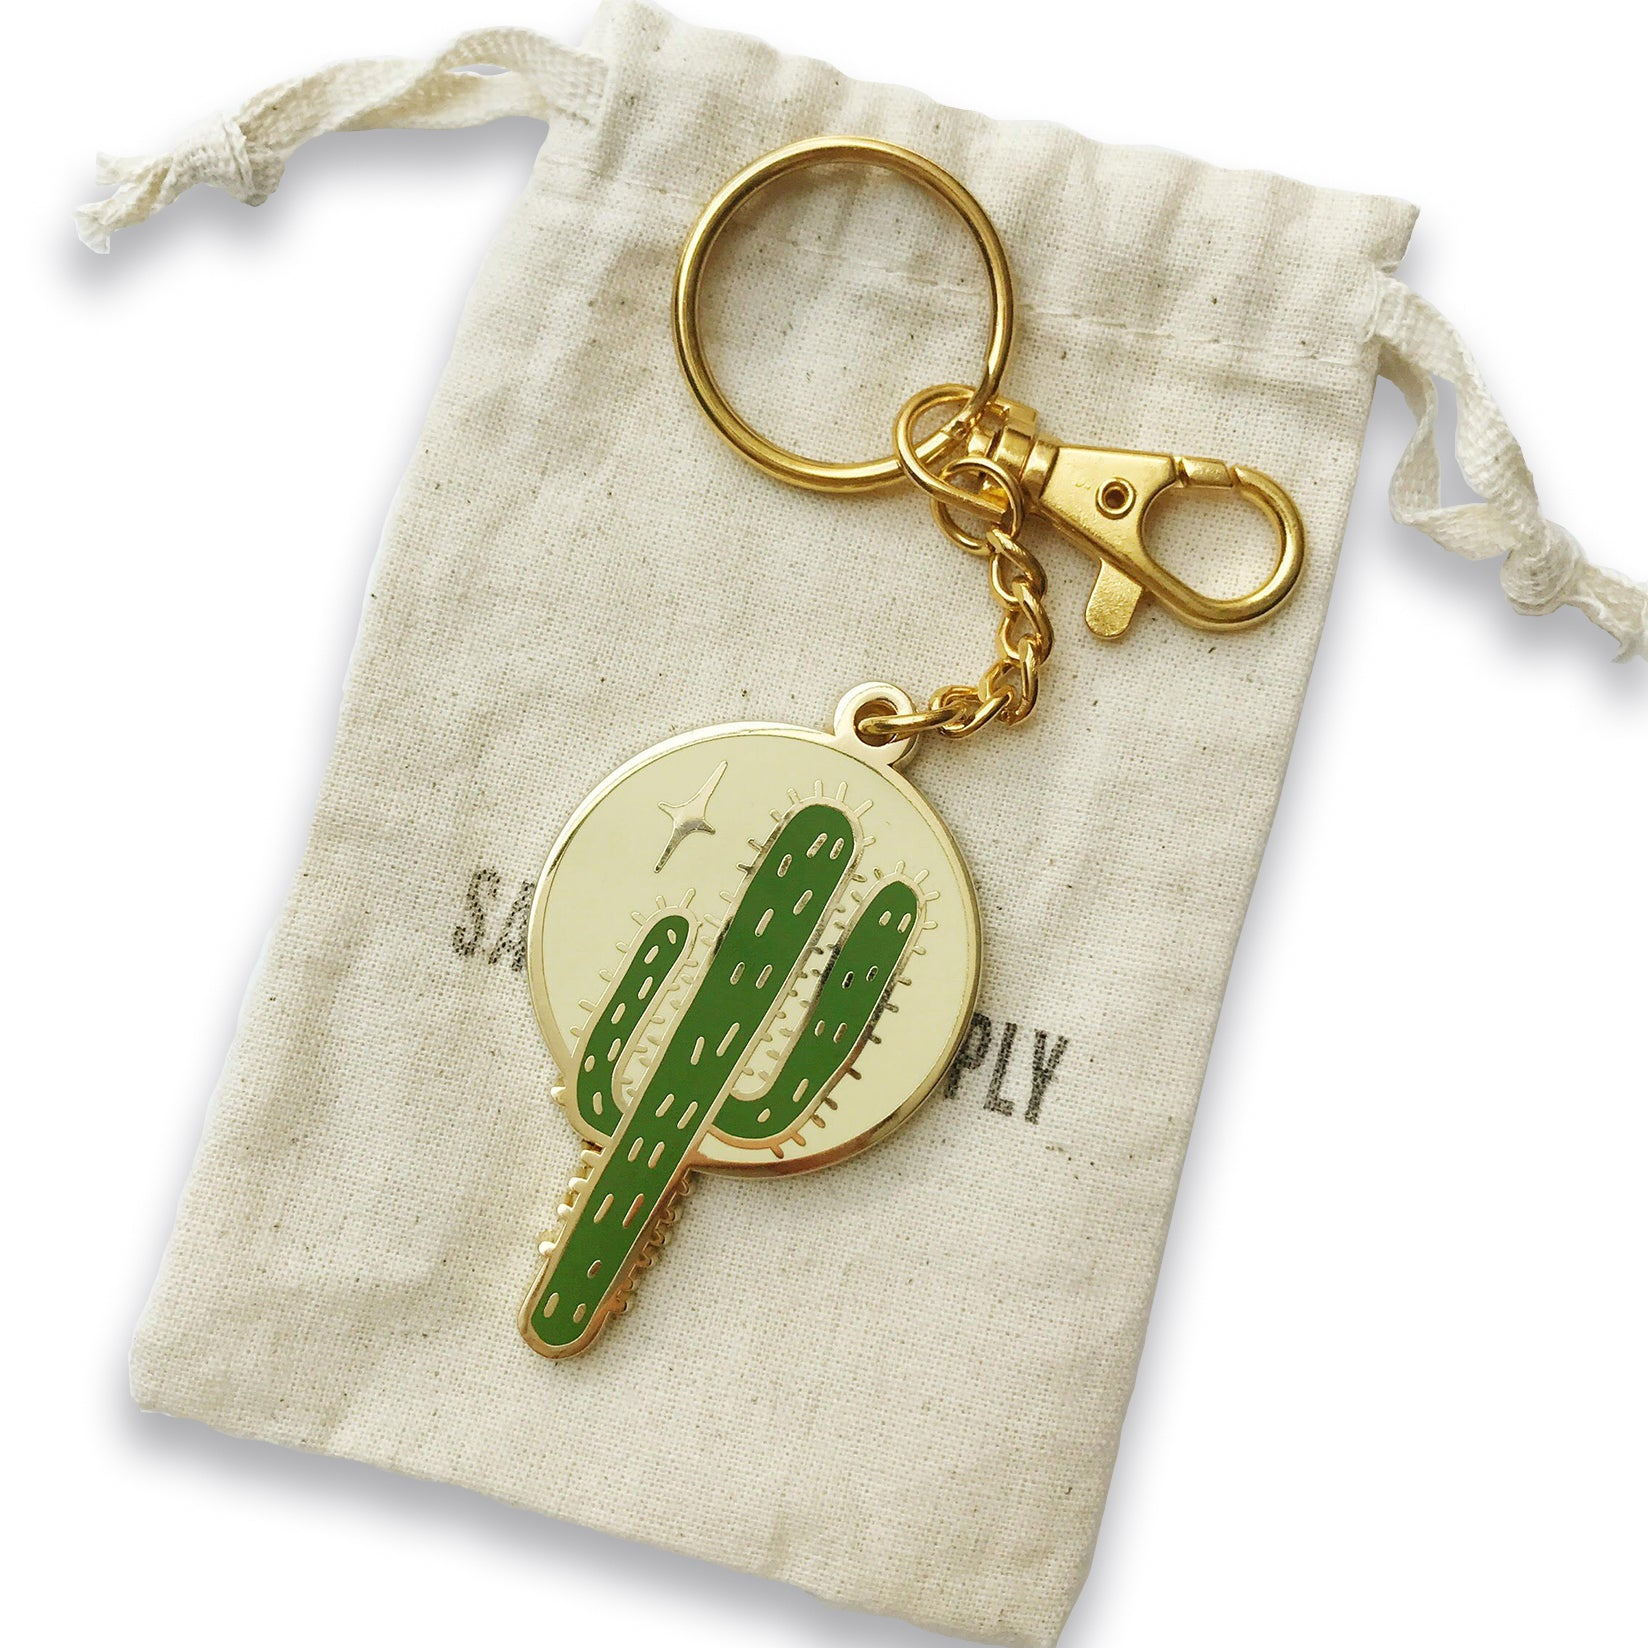 Saguaro Nights Keychain & Purse Charm - Sad Truth Supply